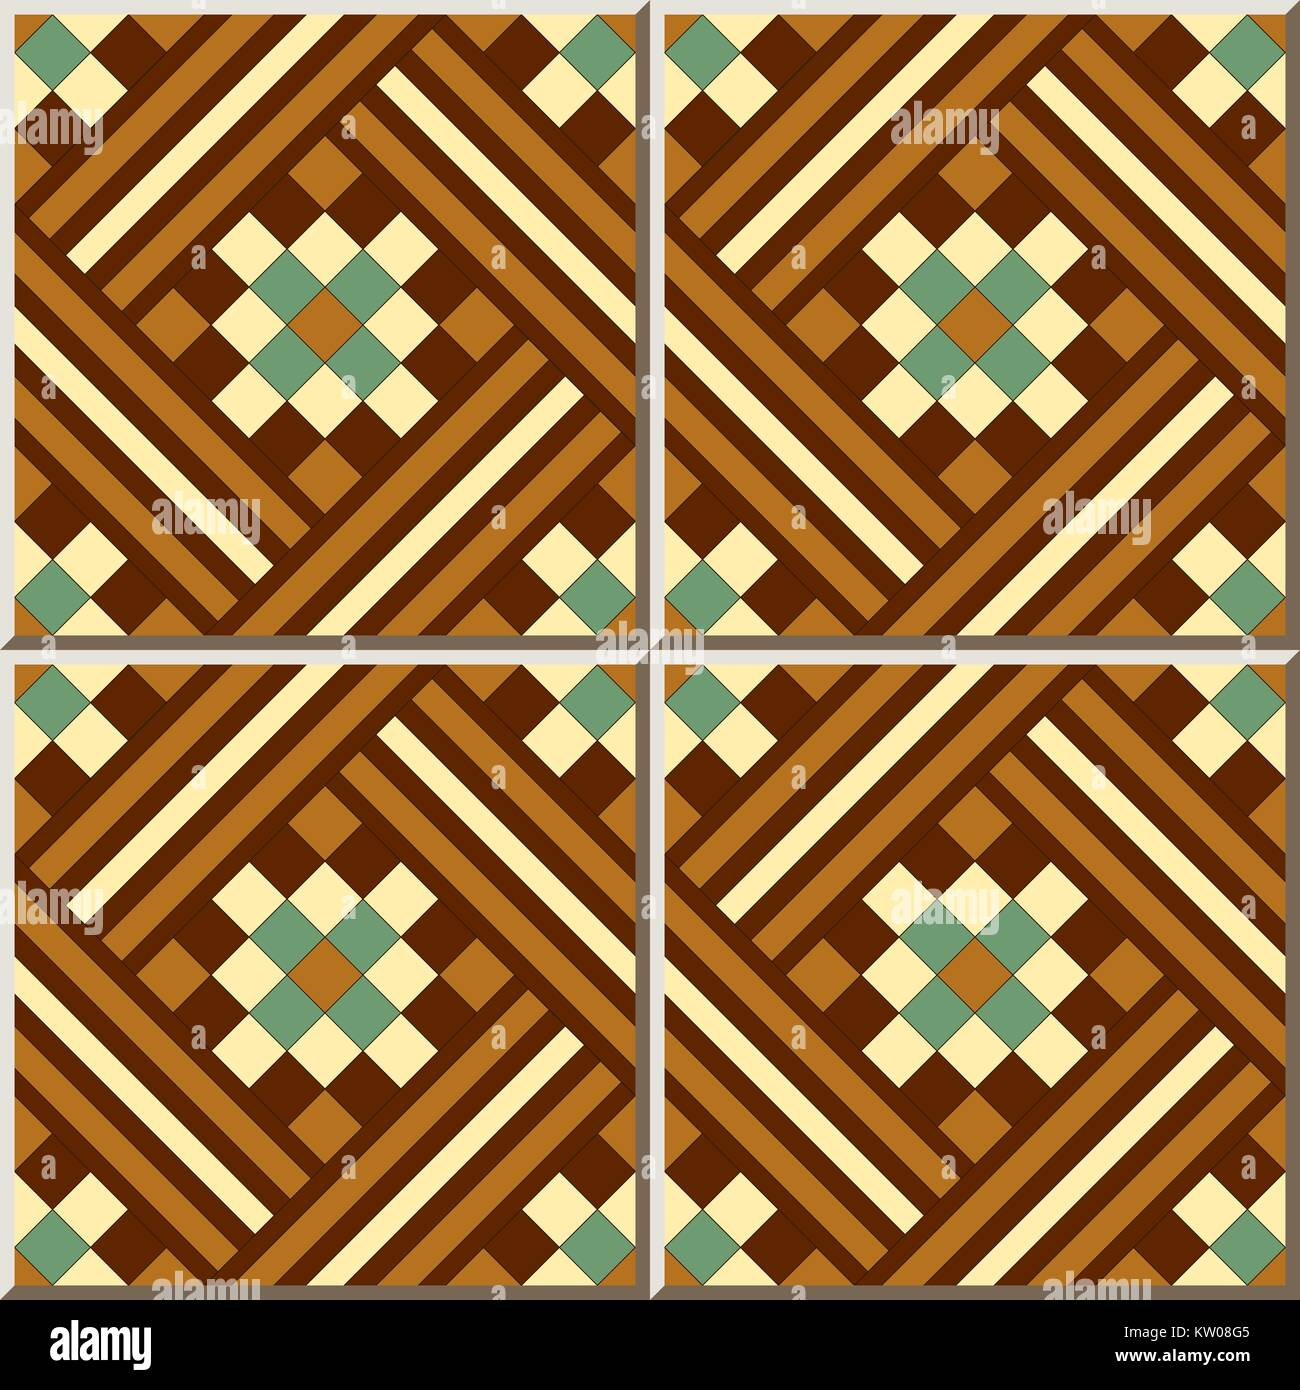 Delighted mosaic ceramic tile patterns contemporary the best ceramic tile pattern of square check ggeometry mosaic stock vector dailygadgetfo Images